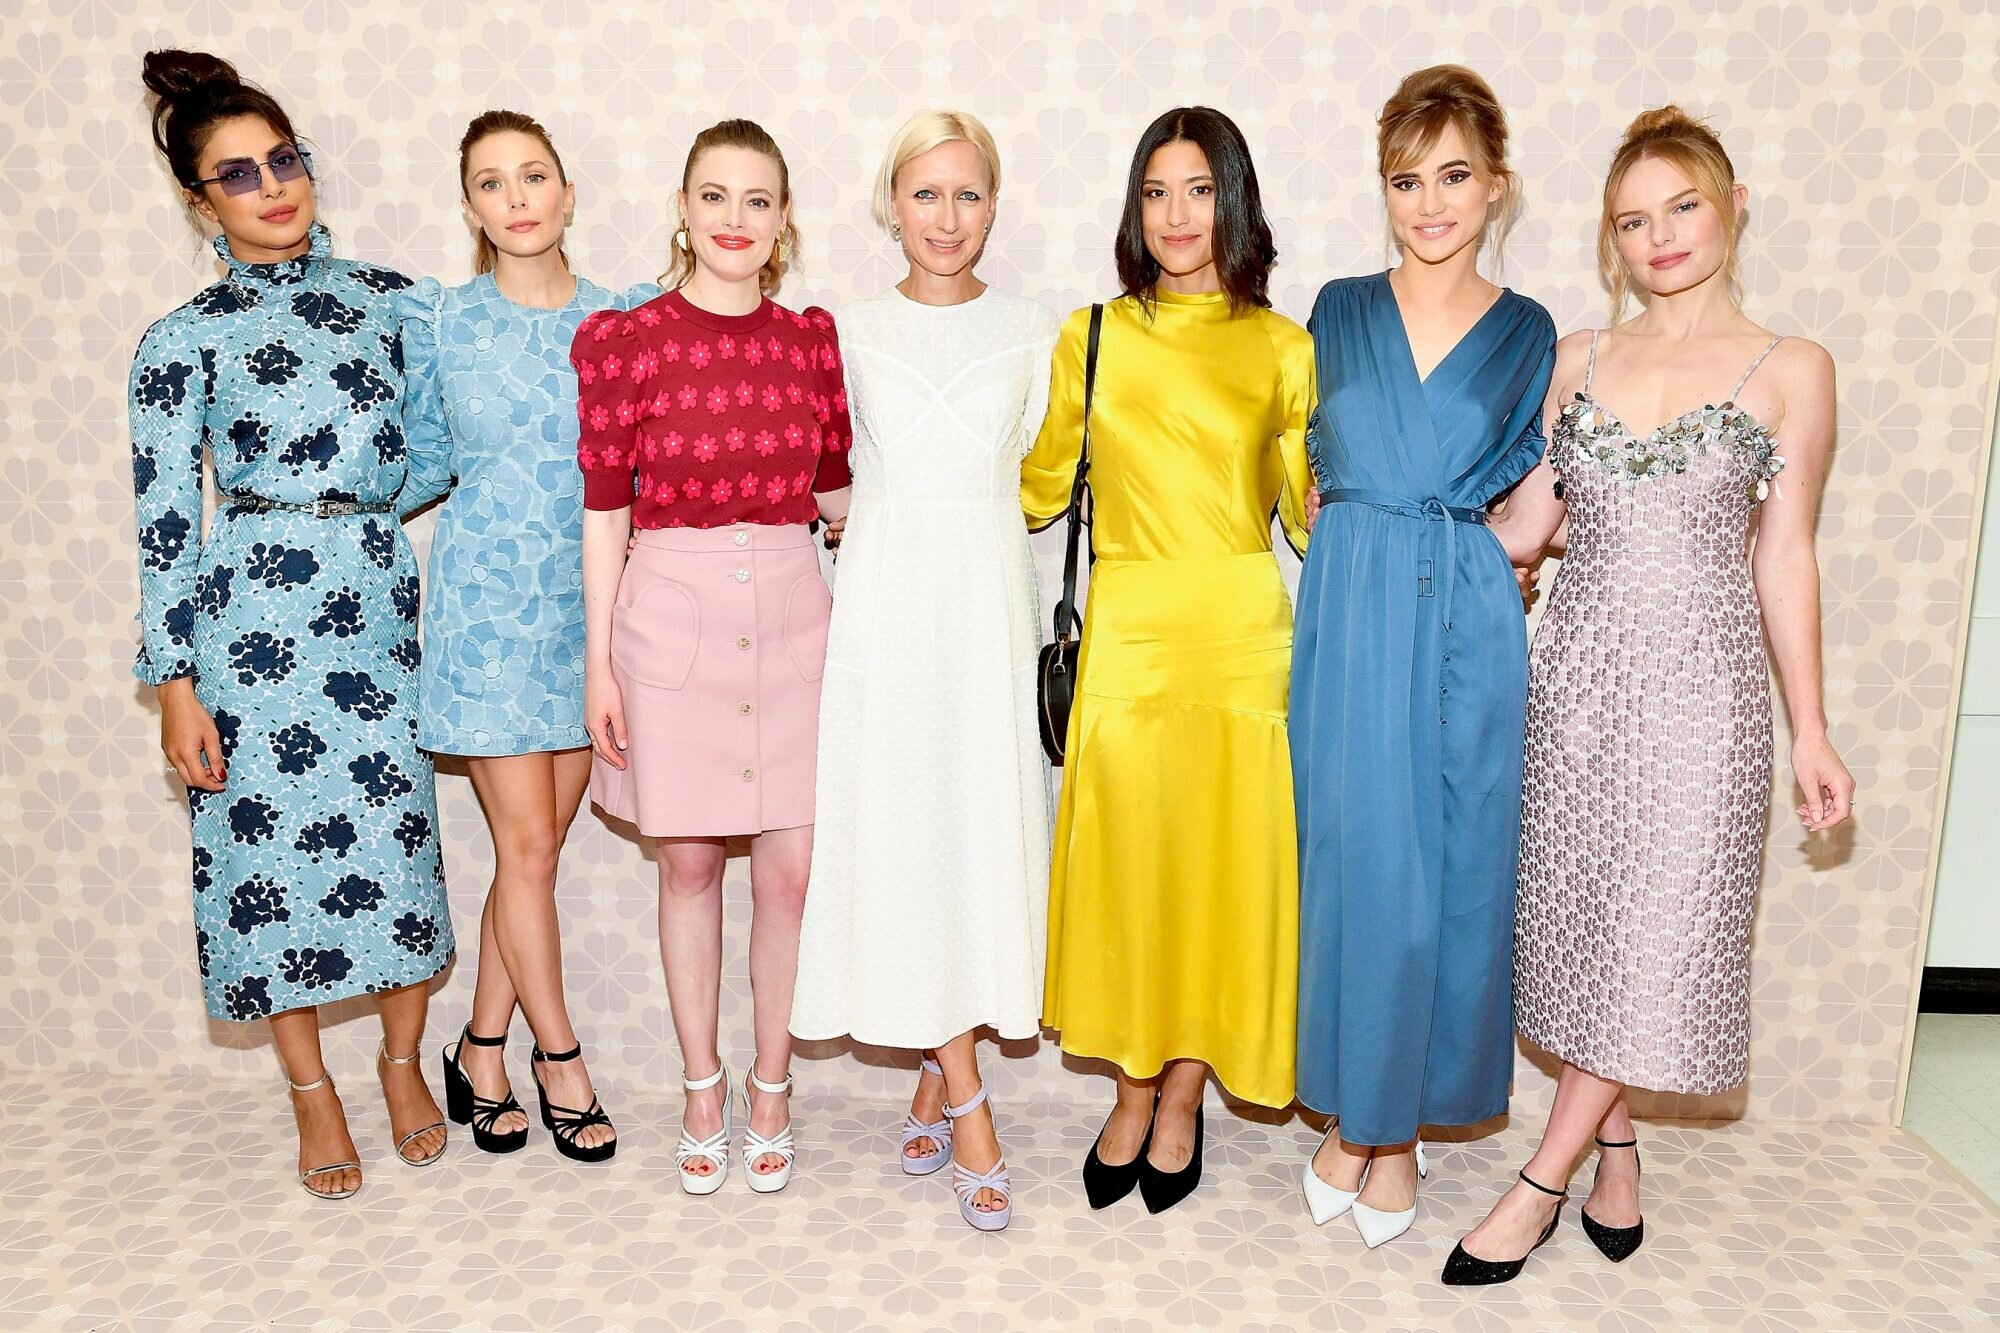 Kate Spade Brand Honors Late Designer At Fashion Week Show People Com